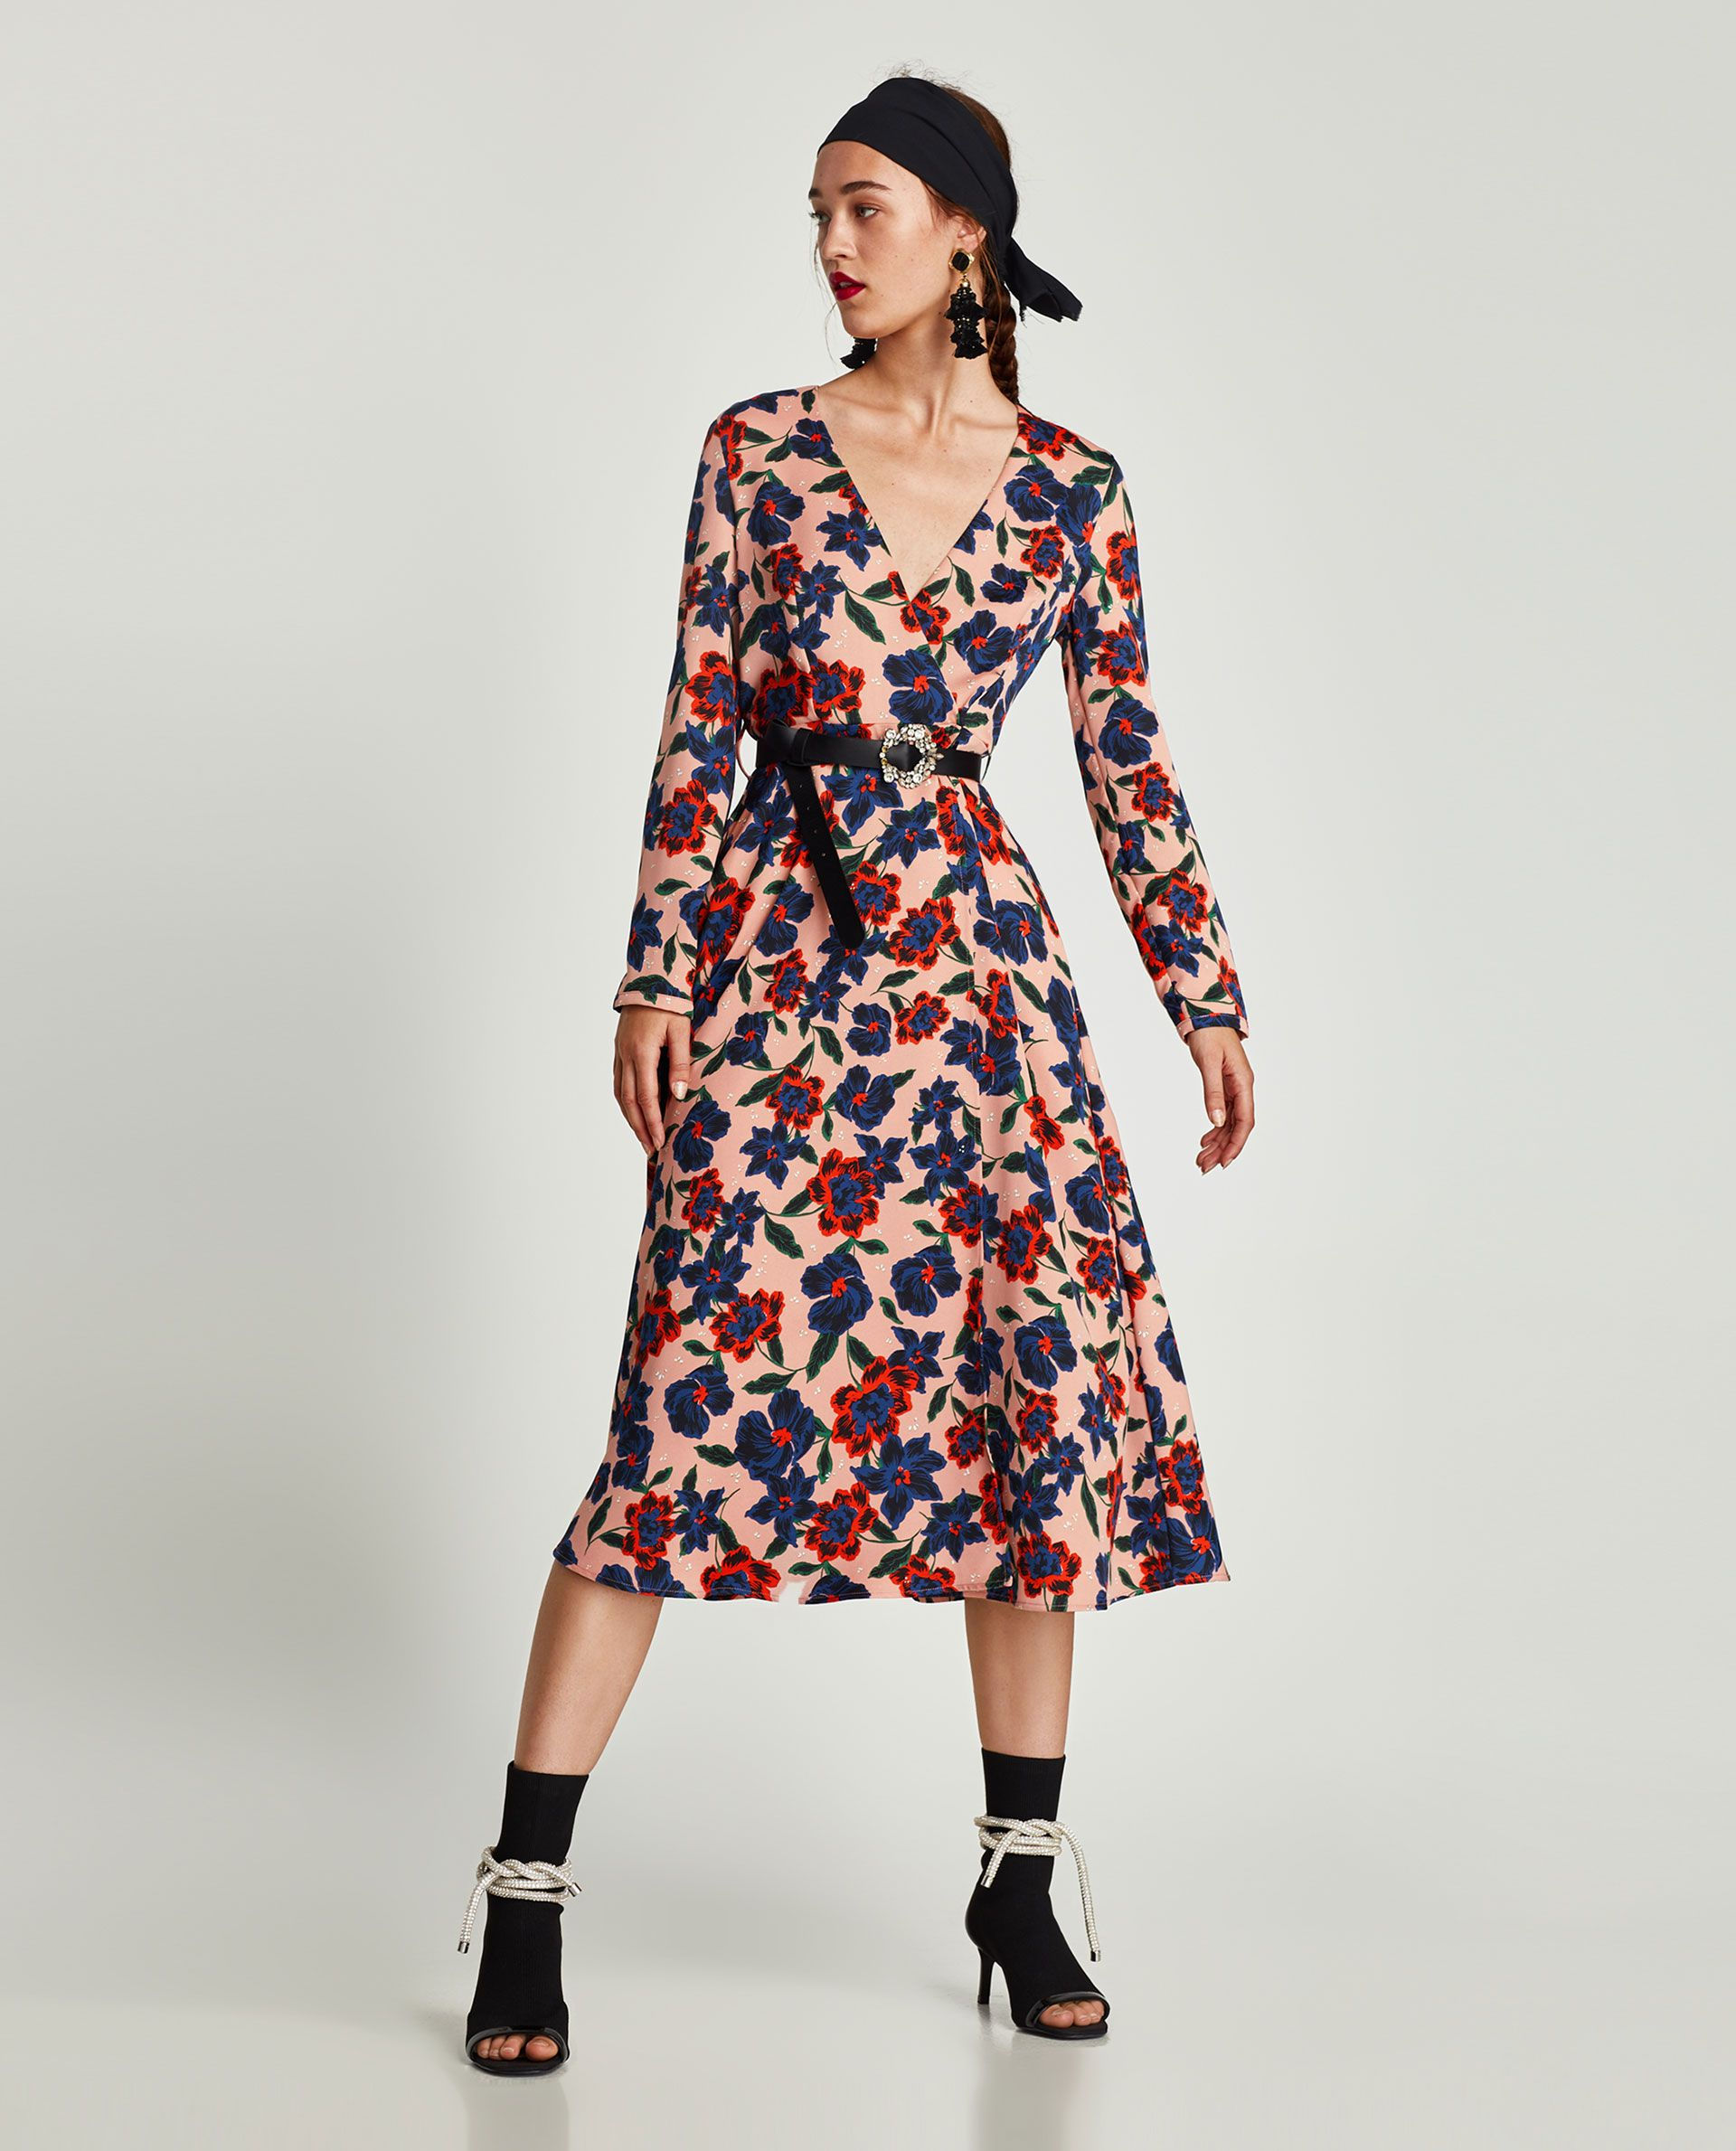 2afd09aa4d Image 1 of FLORAL PRINT MIDI DRESS from Zara | window shopping ...